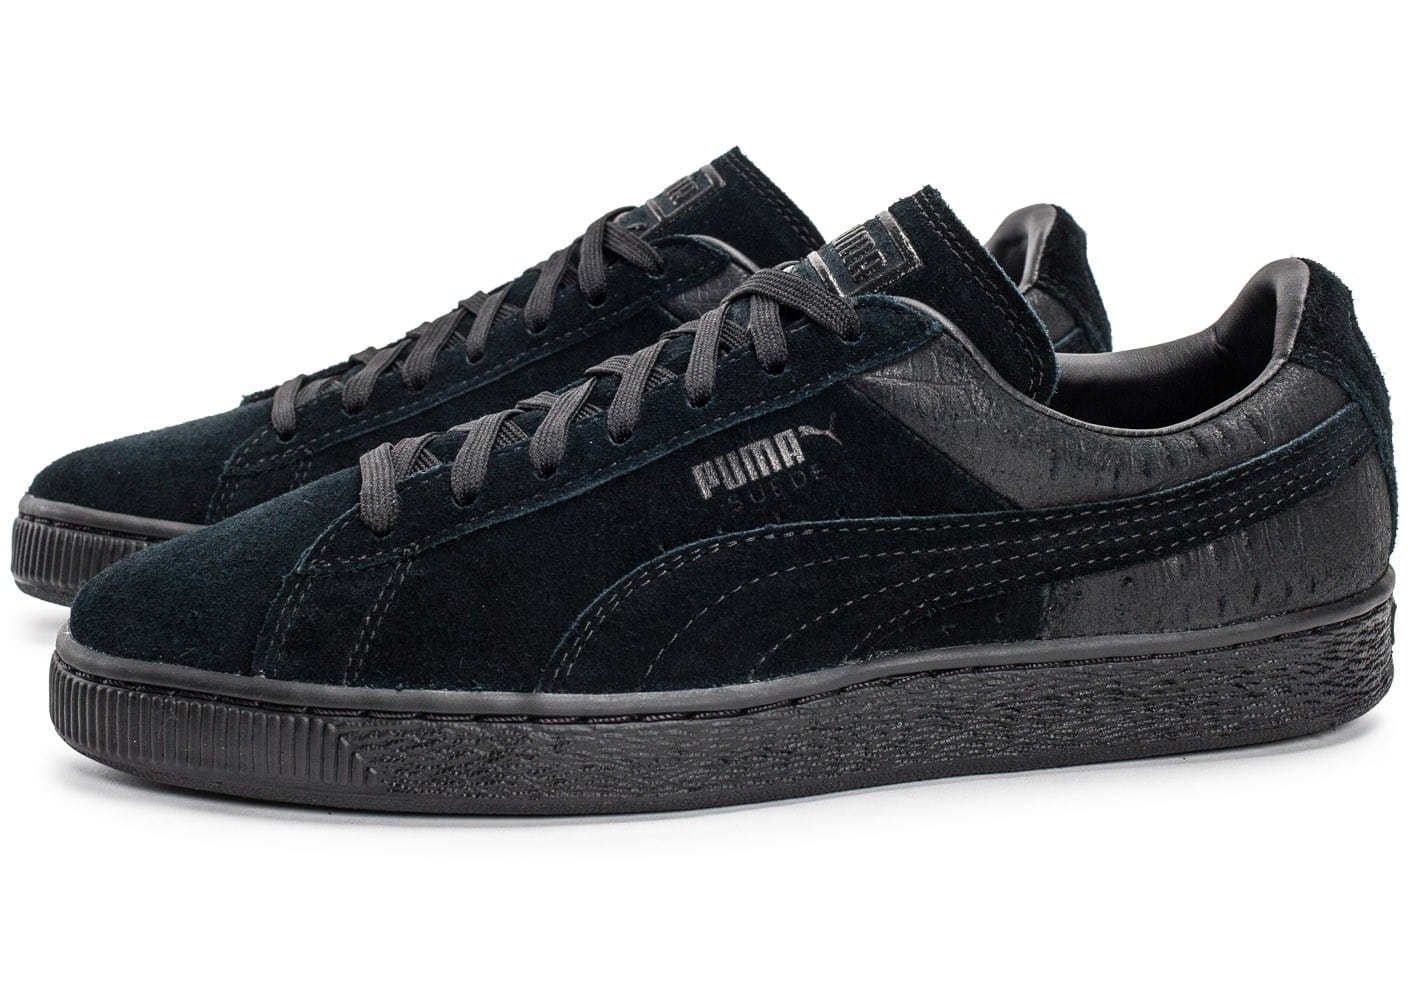 Puma Chaussures O6dq46w Gratifying Suede Casual Argentées Unisexe gtqxTPwrg